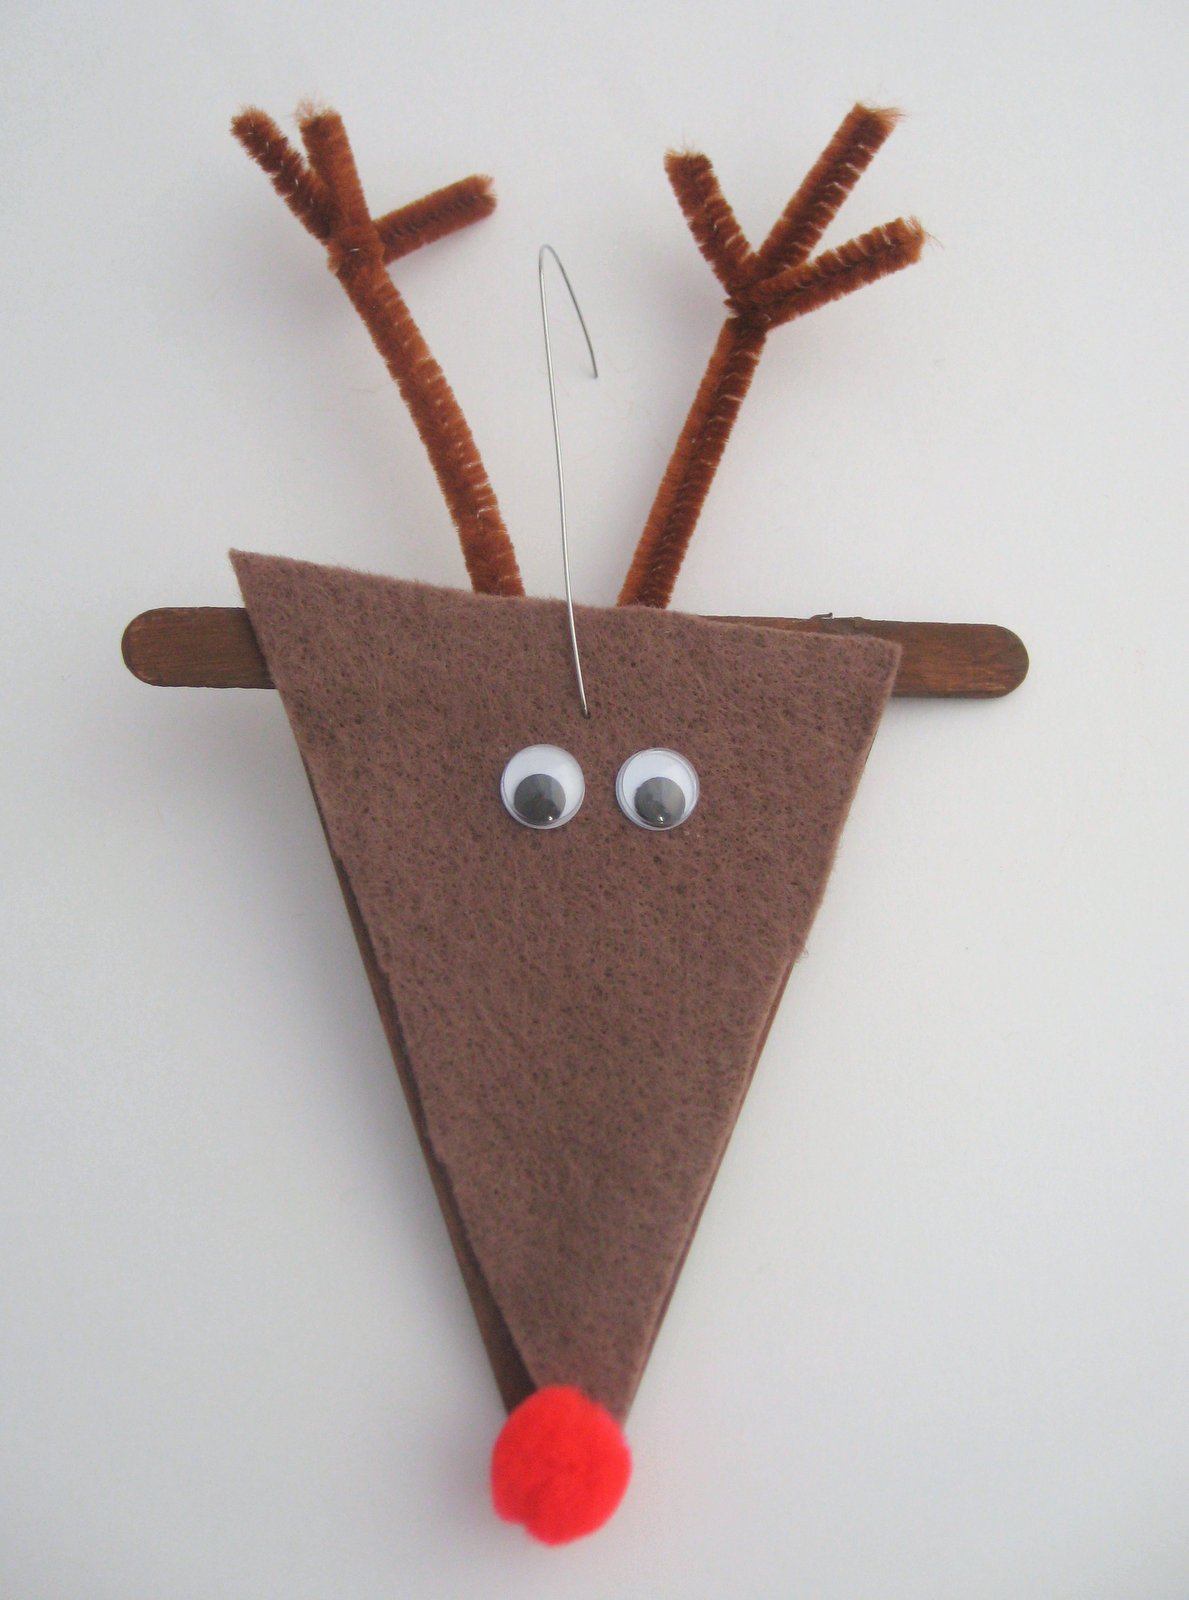 Cindy derosier my creative life craft stick reindeer for Reindeer project